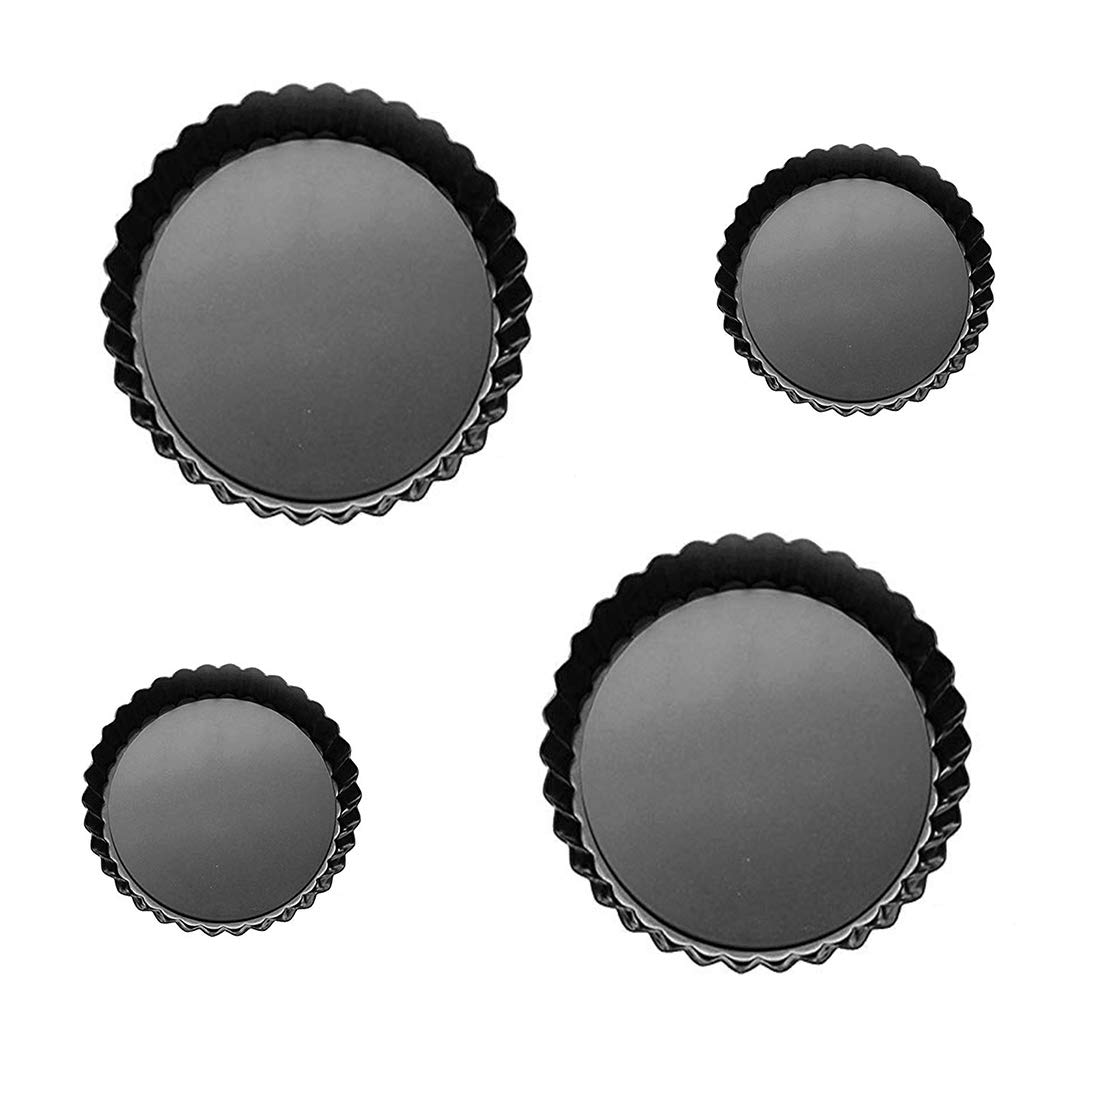 4 Pack Non-Stick Round Quiche Pan Tart Pan with Removable Loose Bottom - 4/9 Inch Tart Pans for Baking